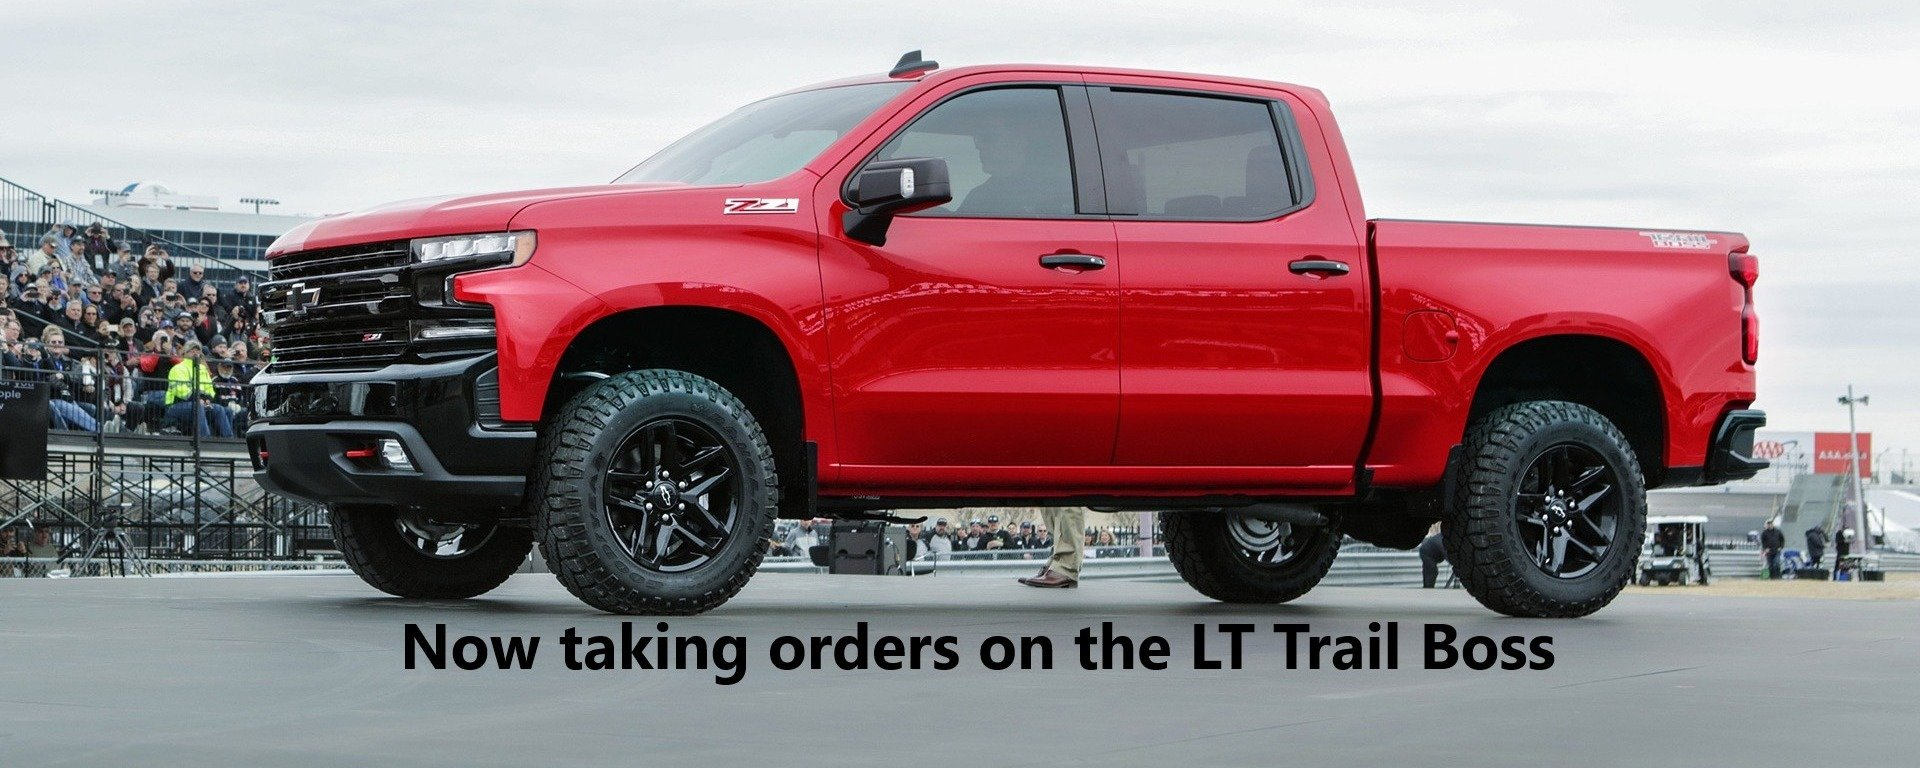 Now taking orders on the LT Trail Boss - Silverado 1500